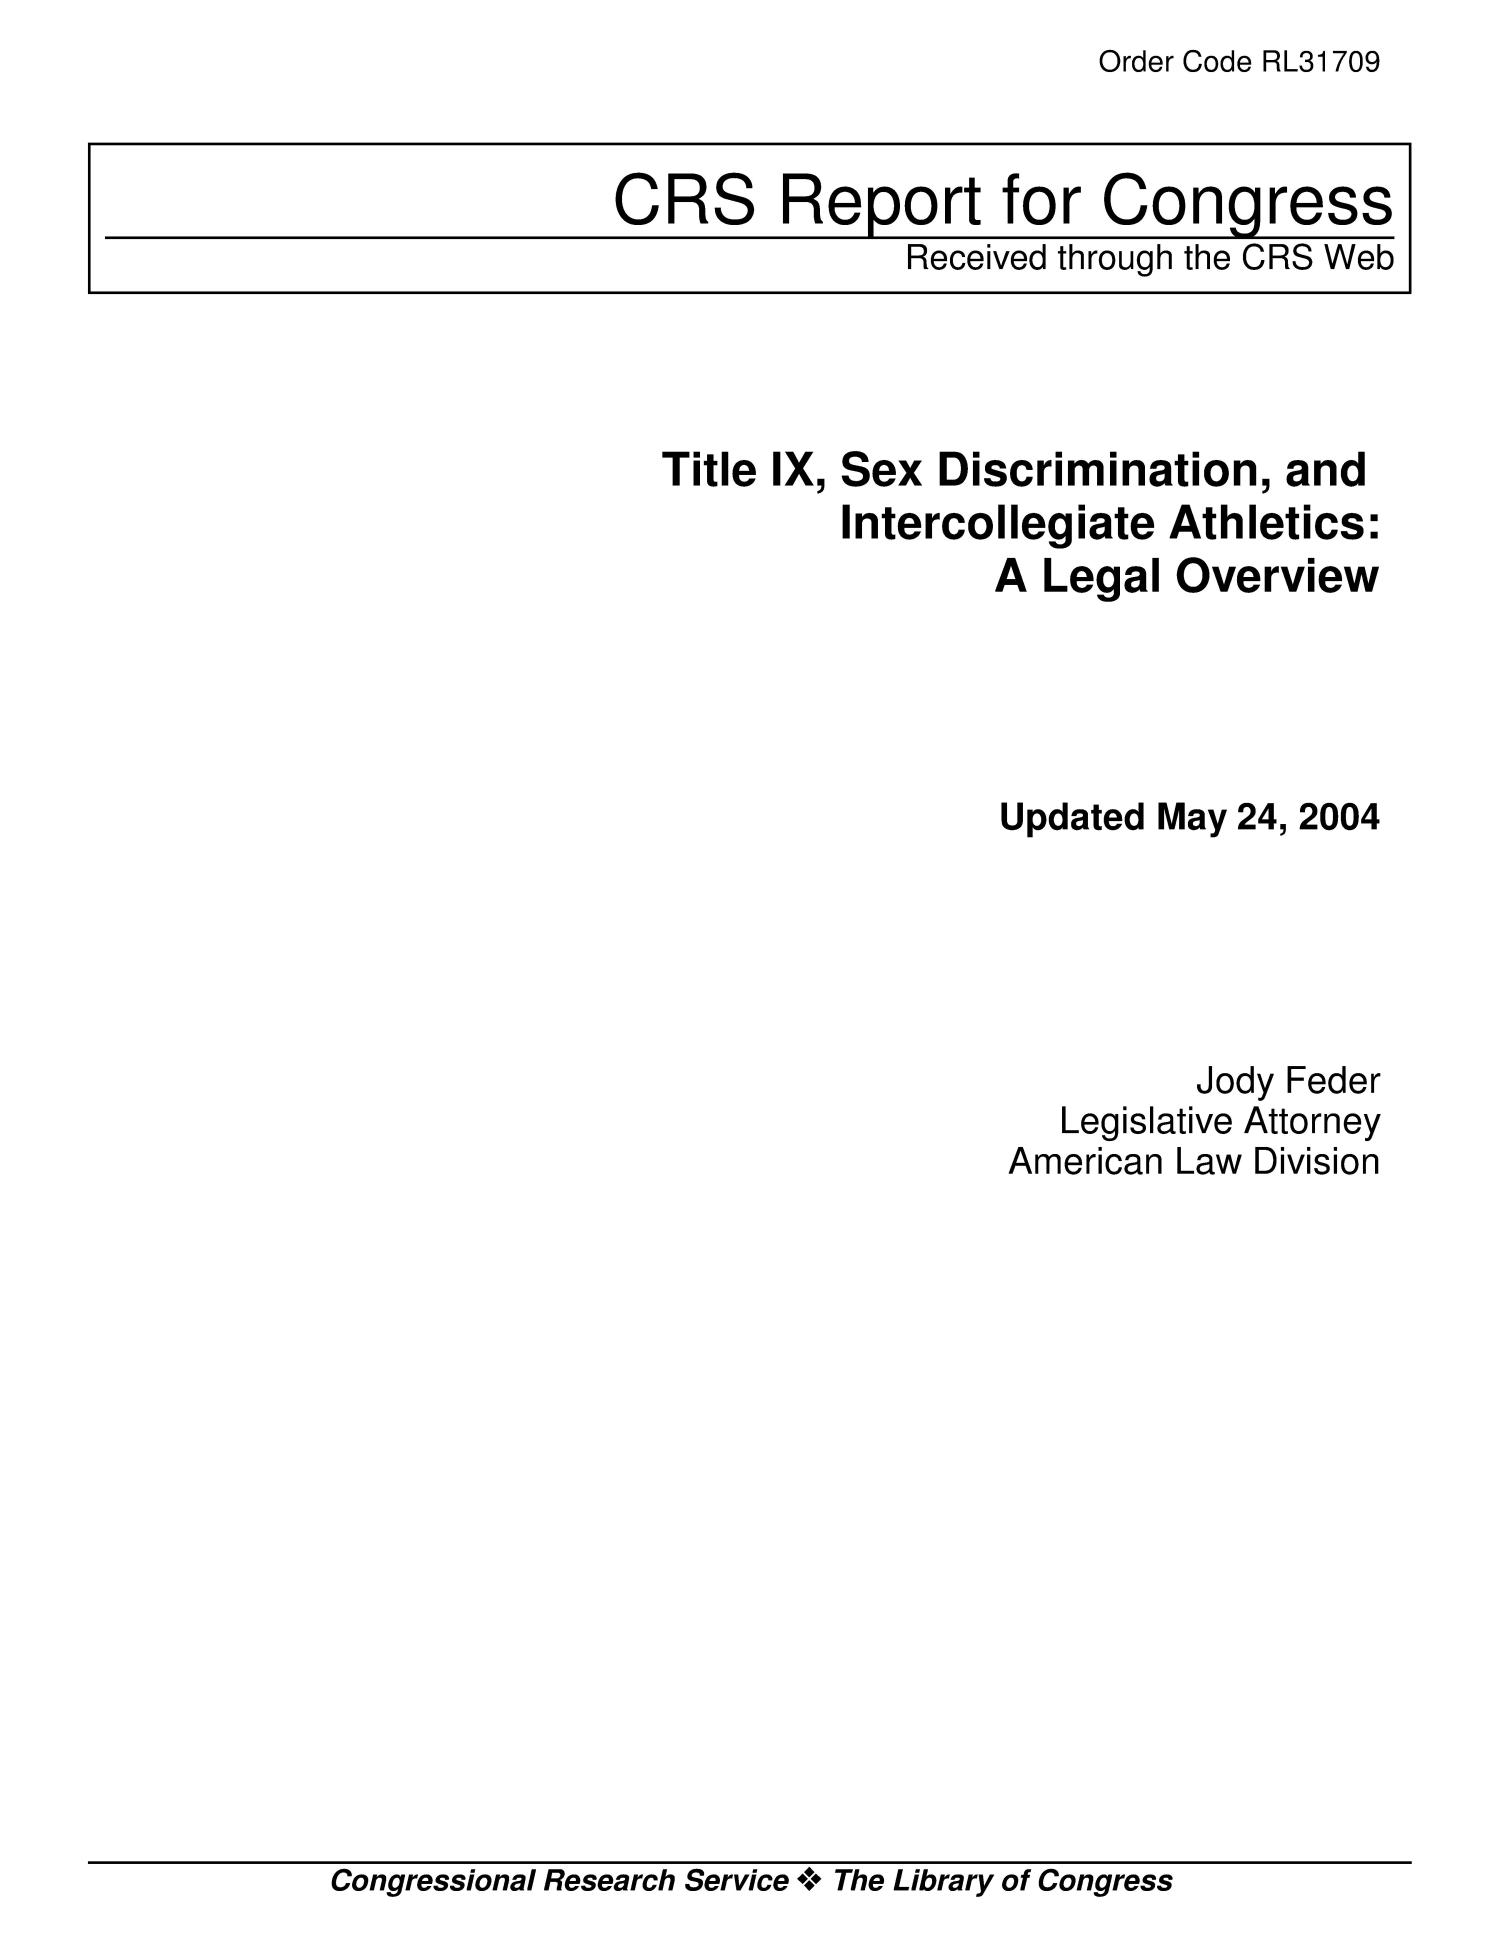 Title IX, Sex Discrimination, and Intercollegiate Athletics: A Legal Overview                                                                                                      [Sequence #]: 1 of 20